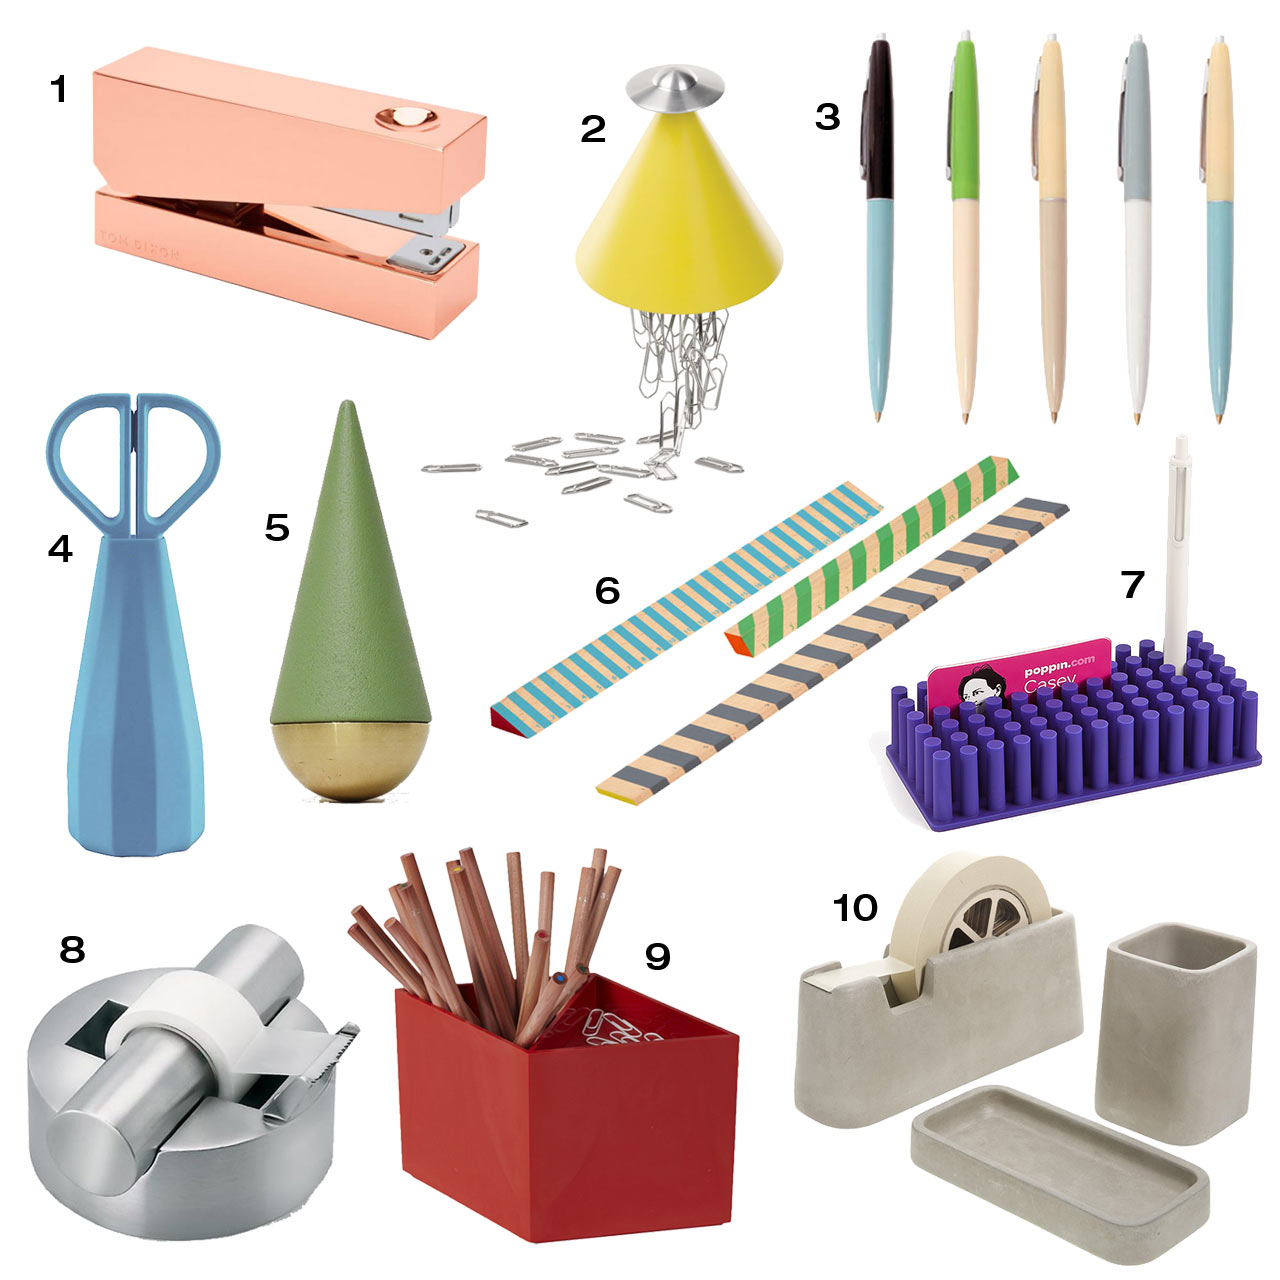 10 modern office supplies to up your desk game design milk